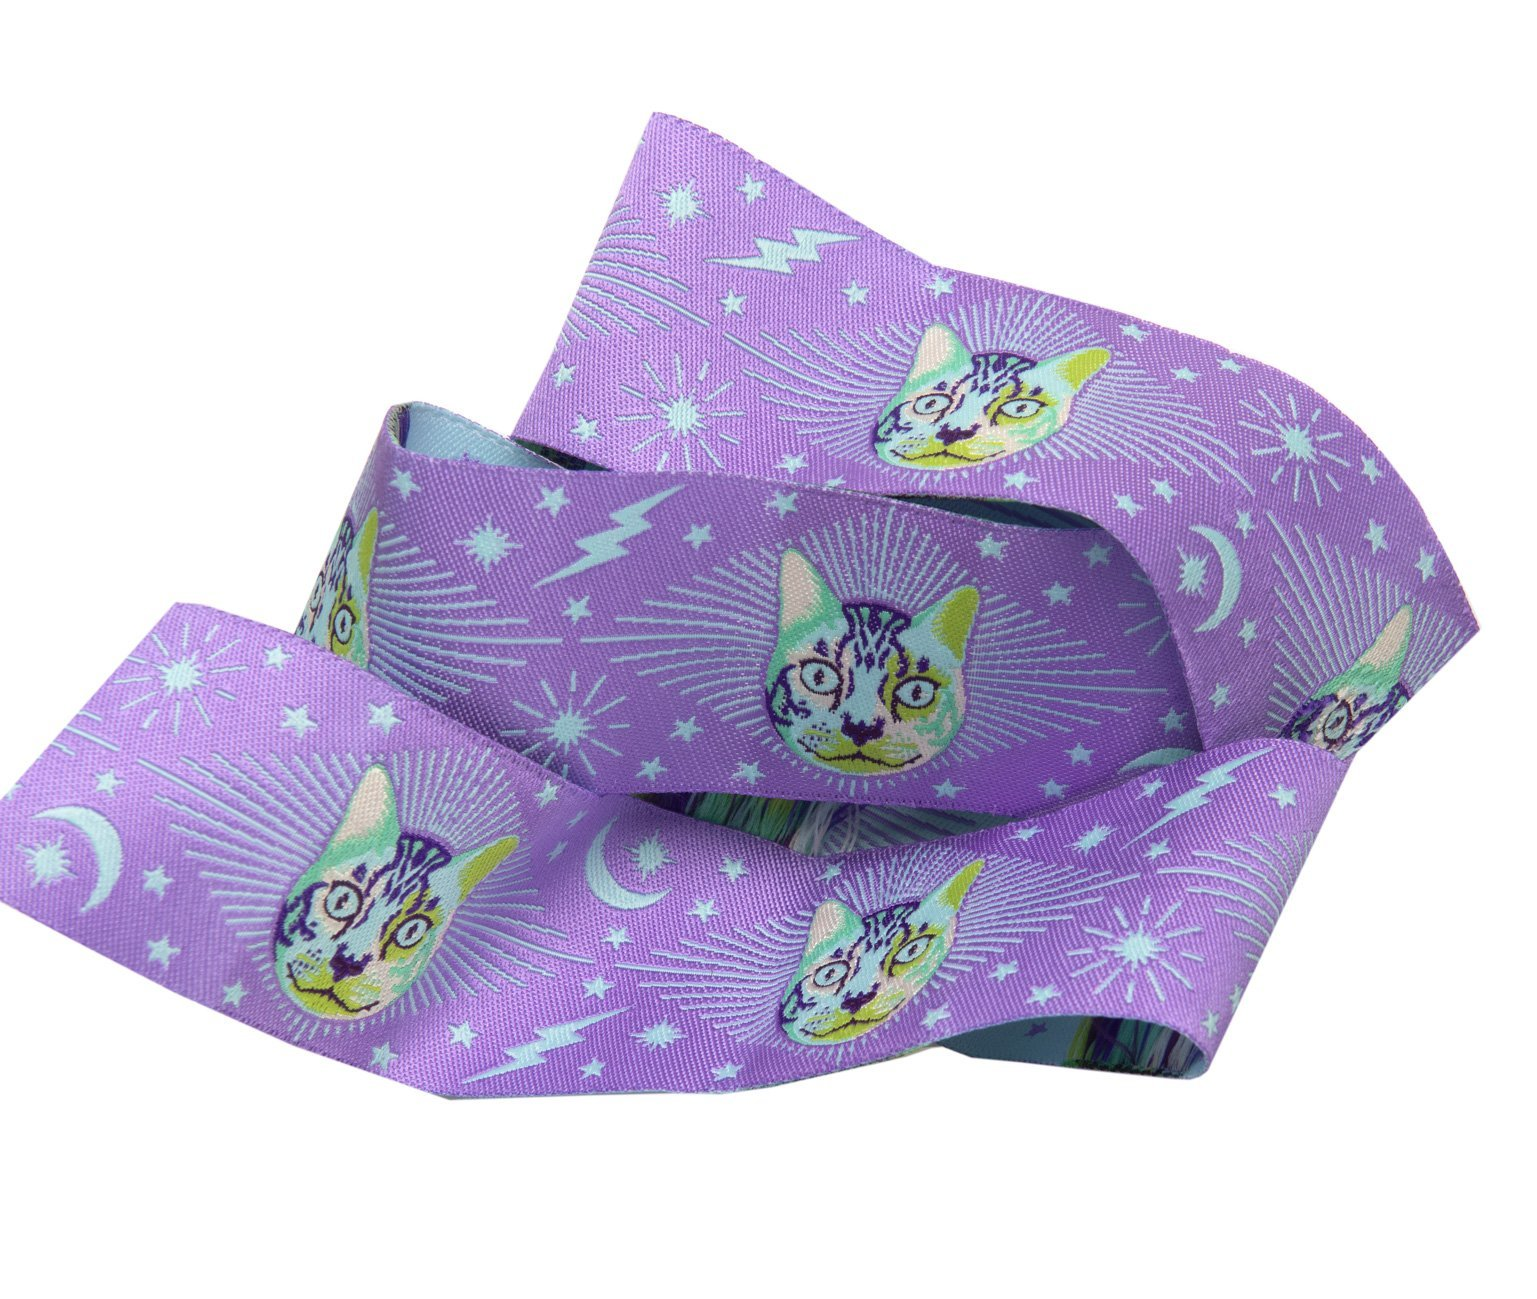 Renaissance Ribbons -Tula Pink Curiouser - Cheshire Cat on purple-1 1/2